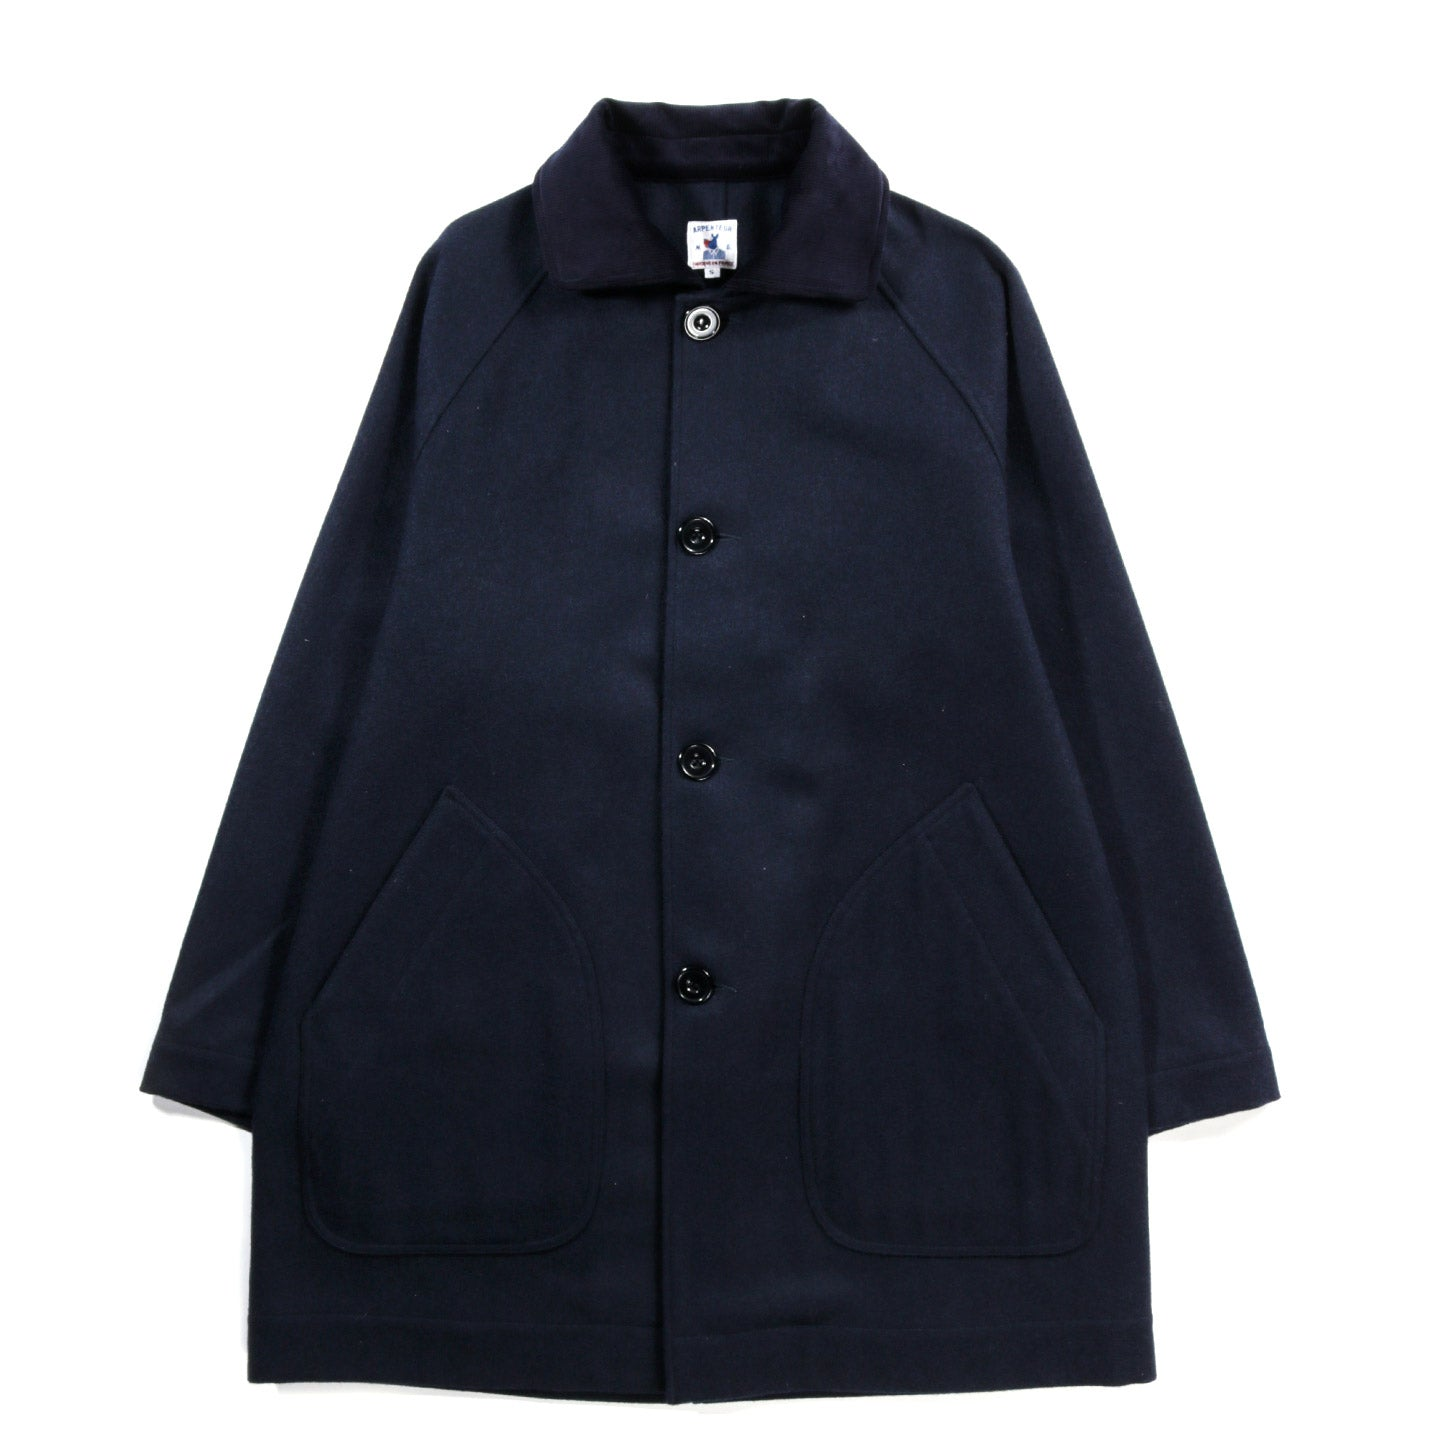 ARPENTEUR MEVI HOODED COAT NAVY